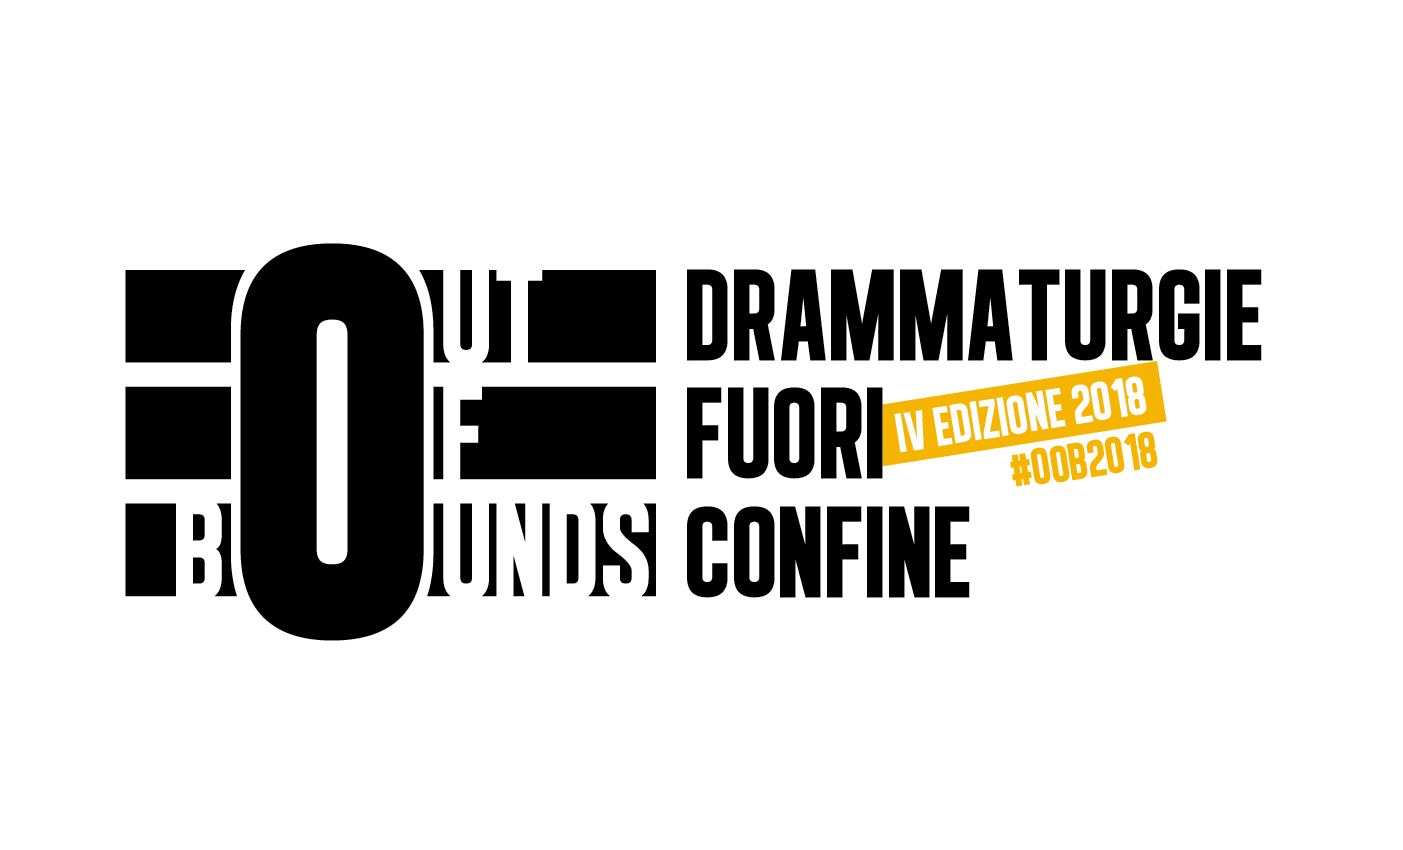 OUT of BOUNDS -drammaturgie fuori confine- 2018